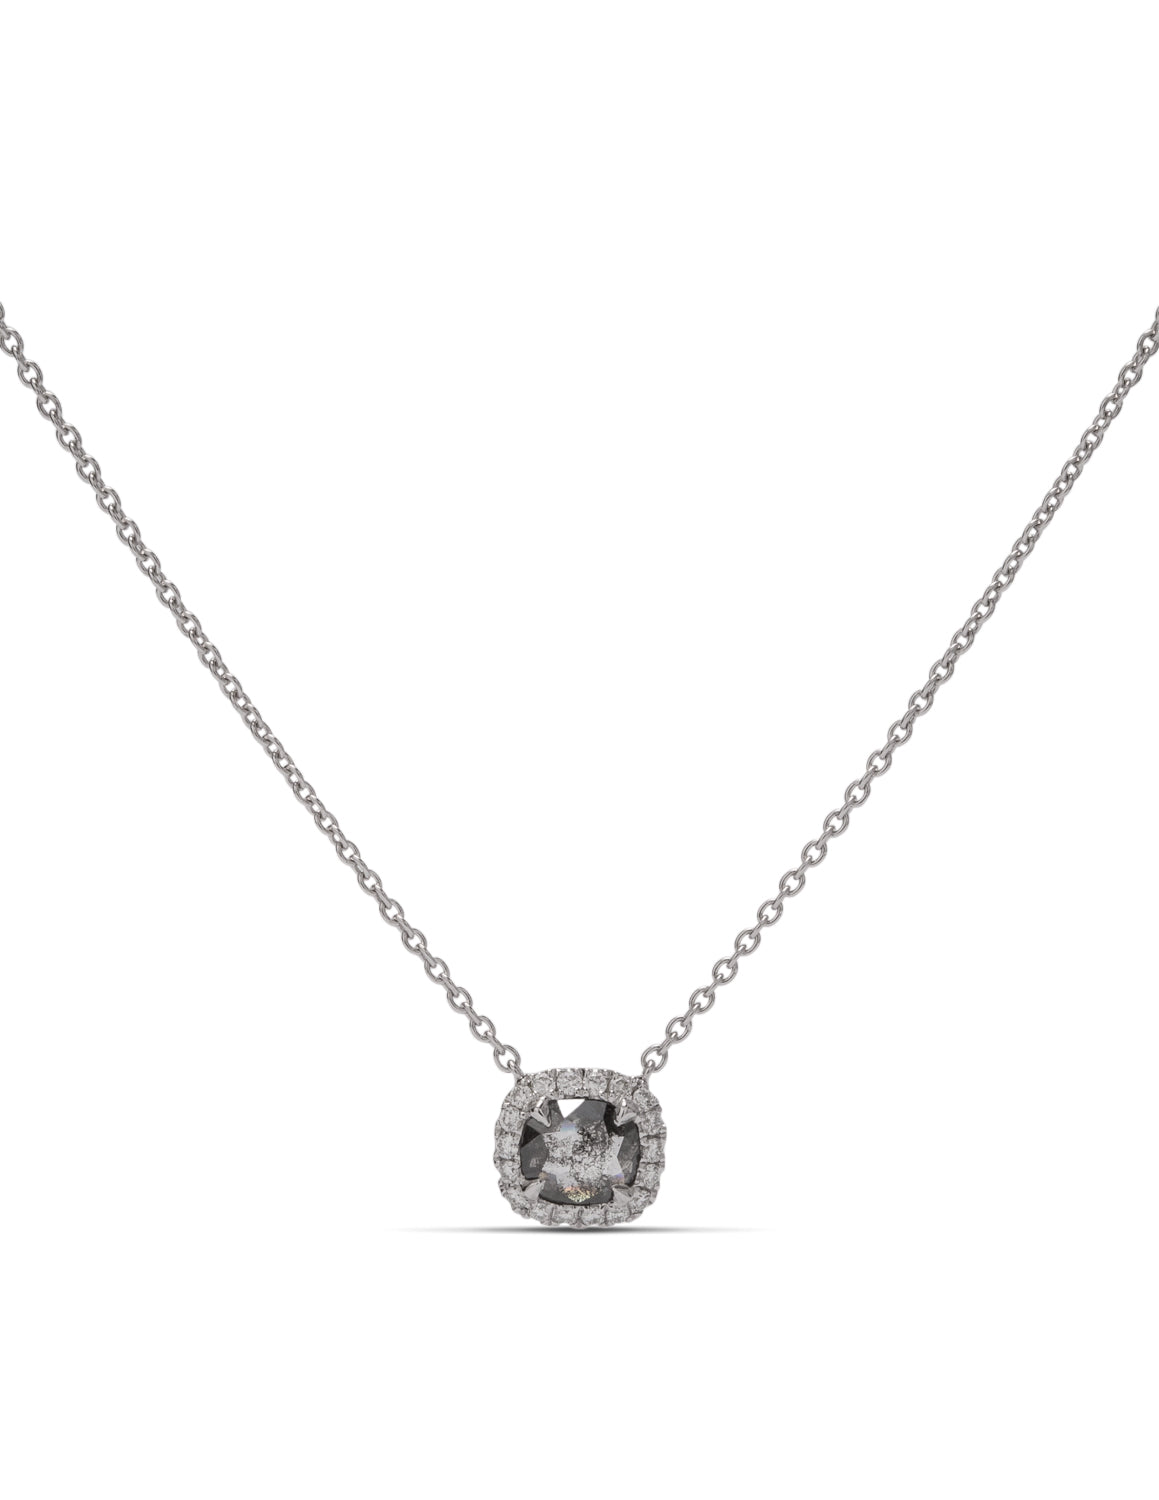 Rough Grey Cushion Shaped Diamond Necklace - Charles Koll Jewellers